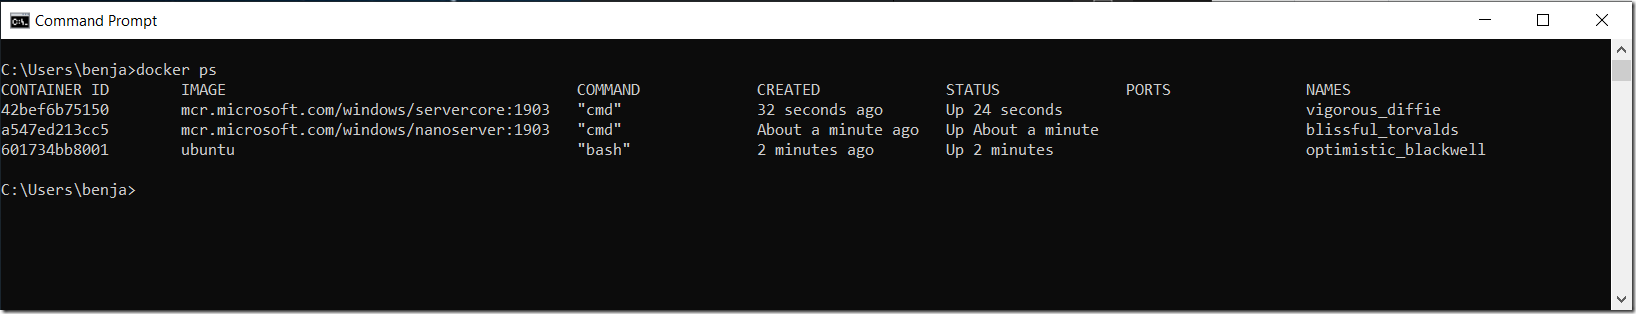 Docker Screenshot